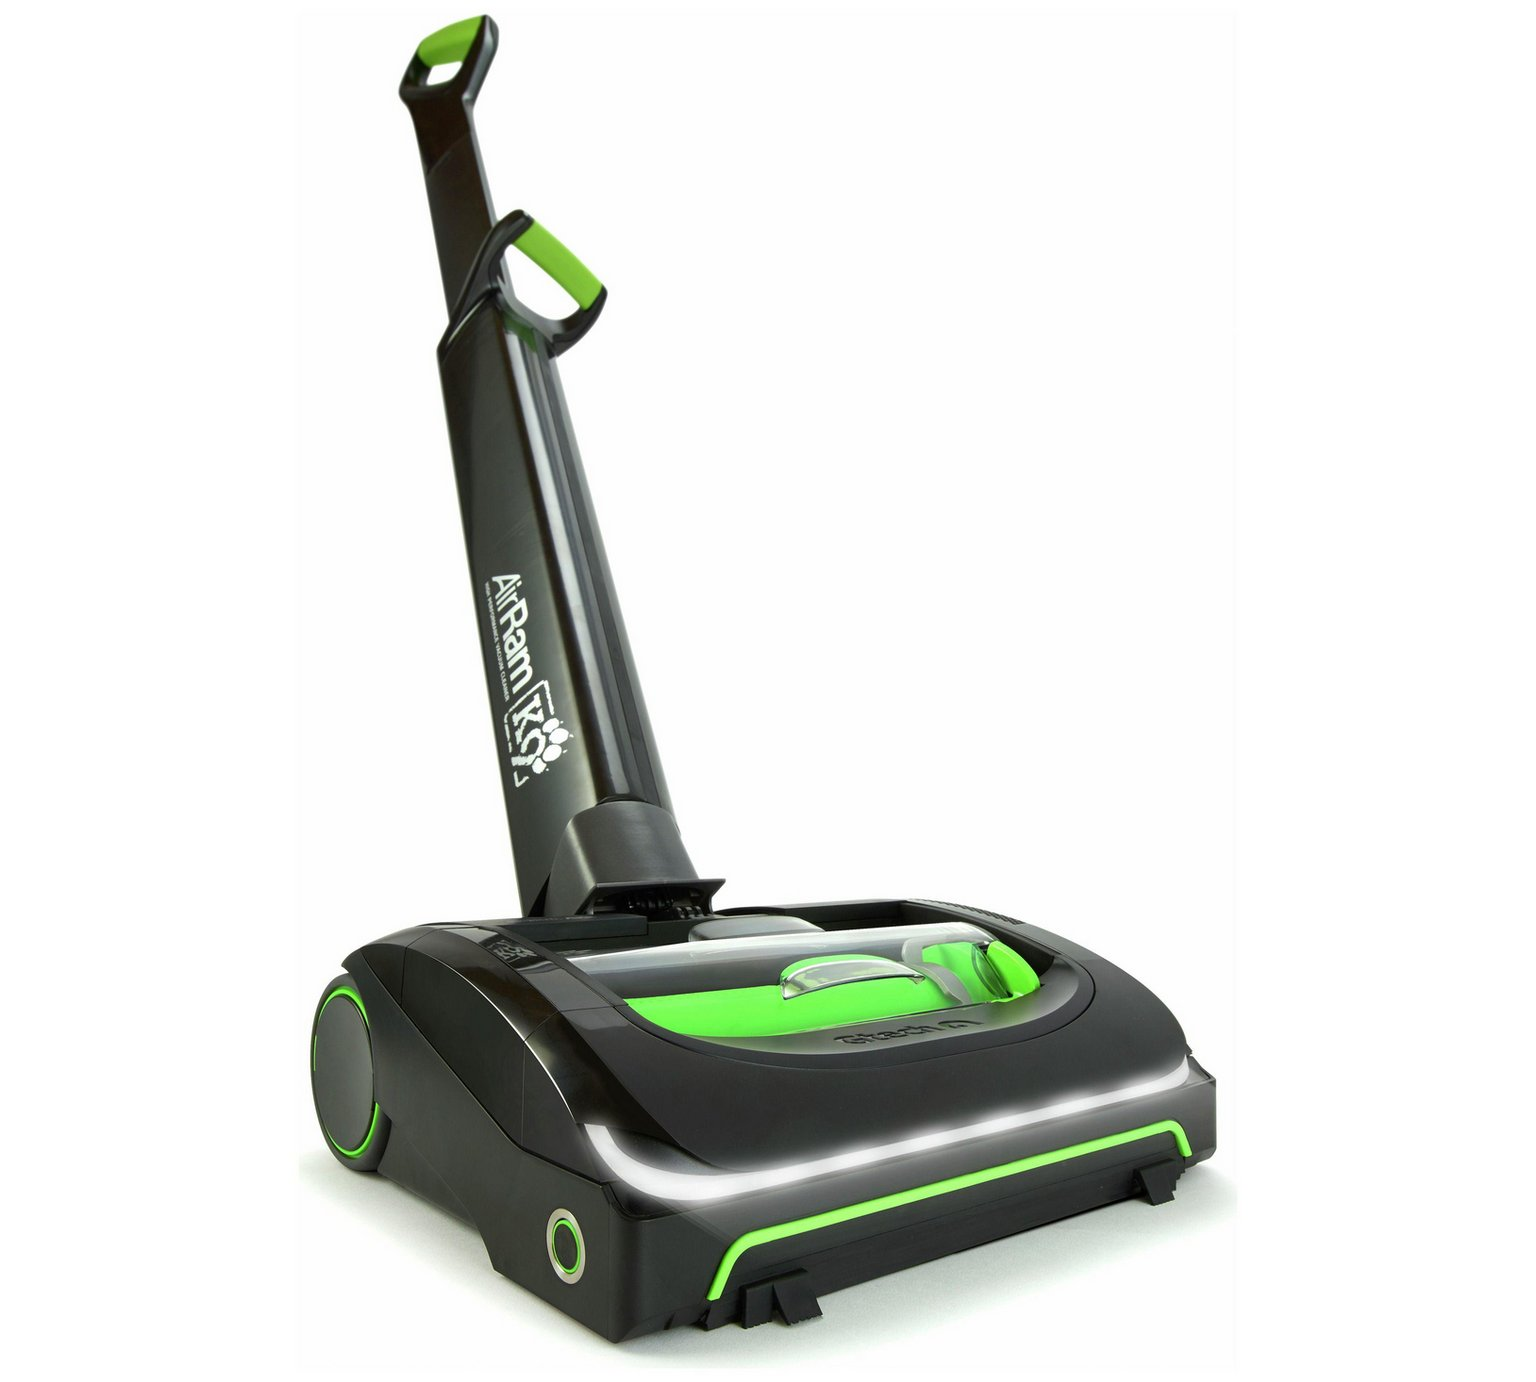 Gtech MK2 K9 AirRam Cordless Upright Vacuum Cleaner